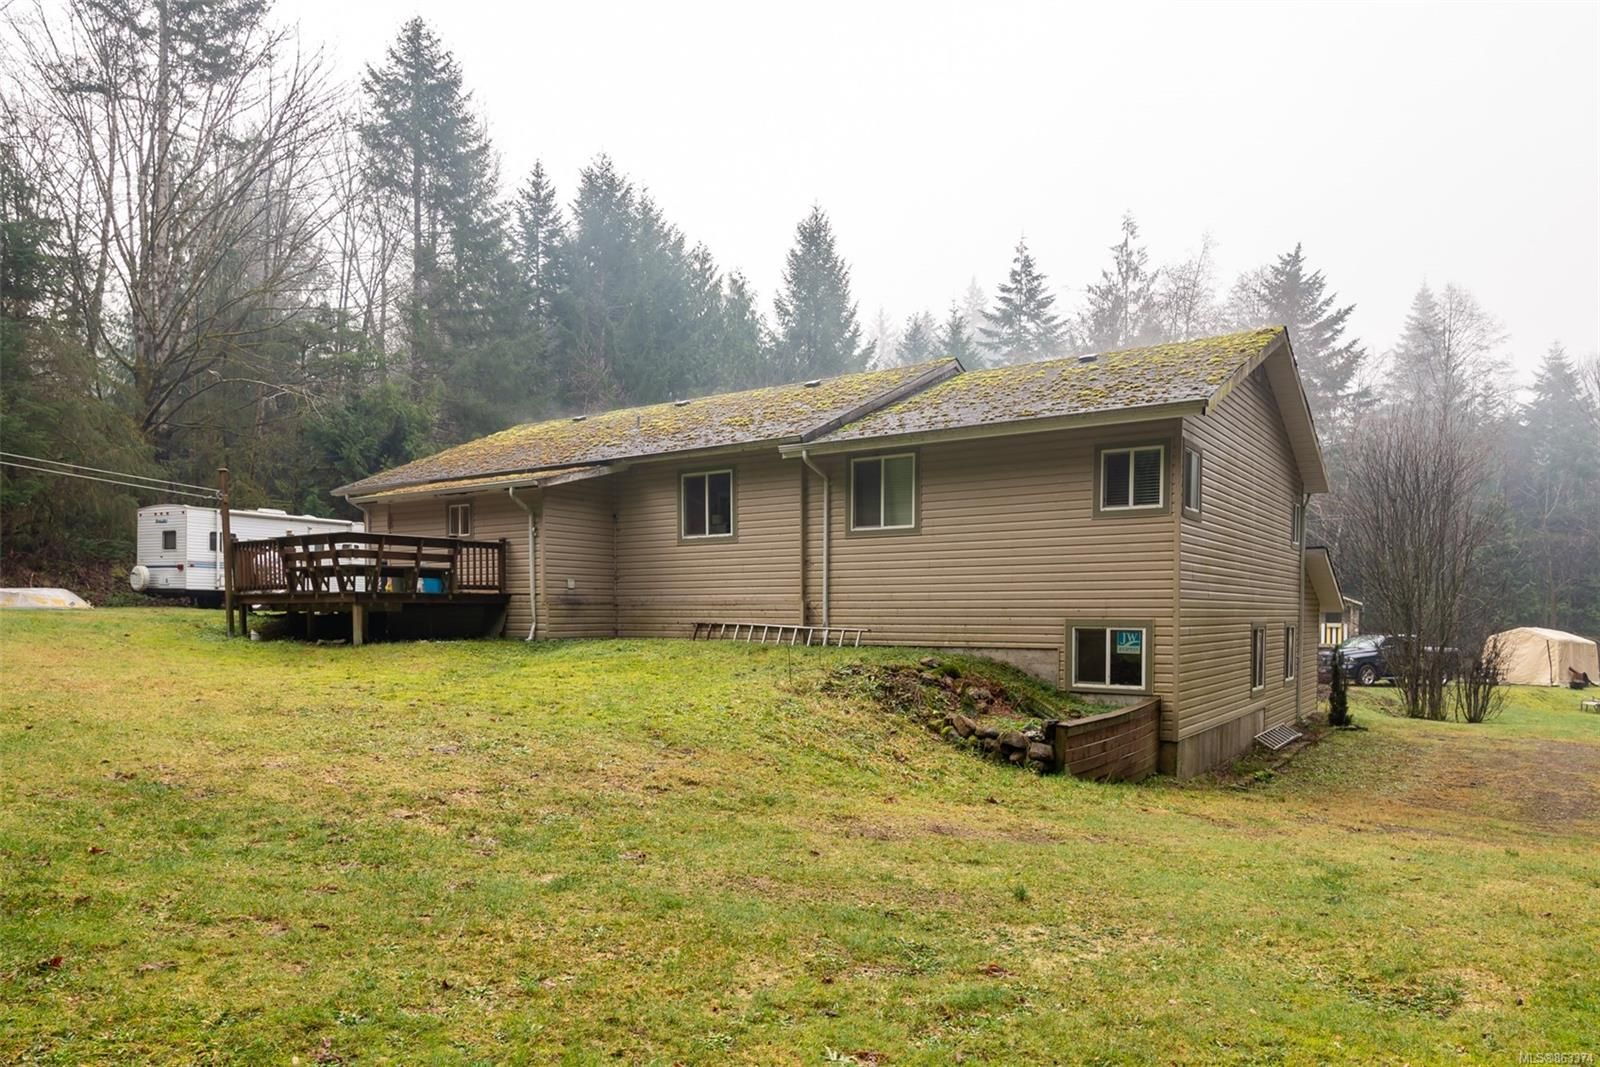 Photo 35: Photos: 572 Sabre Rd in : NI Kelsey Bay/Sayward House for sale (North Island)  : MLS®# 863374